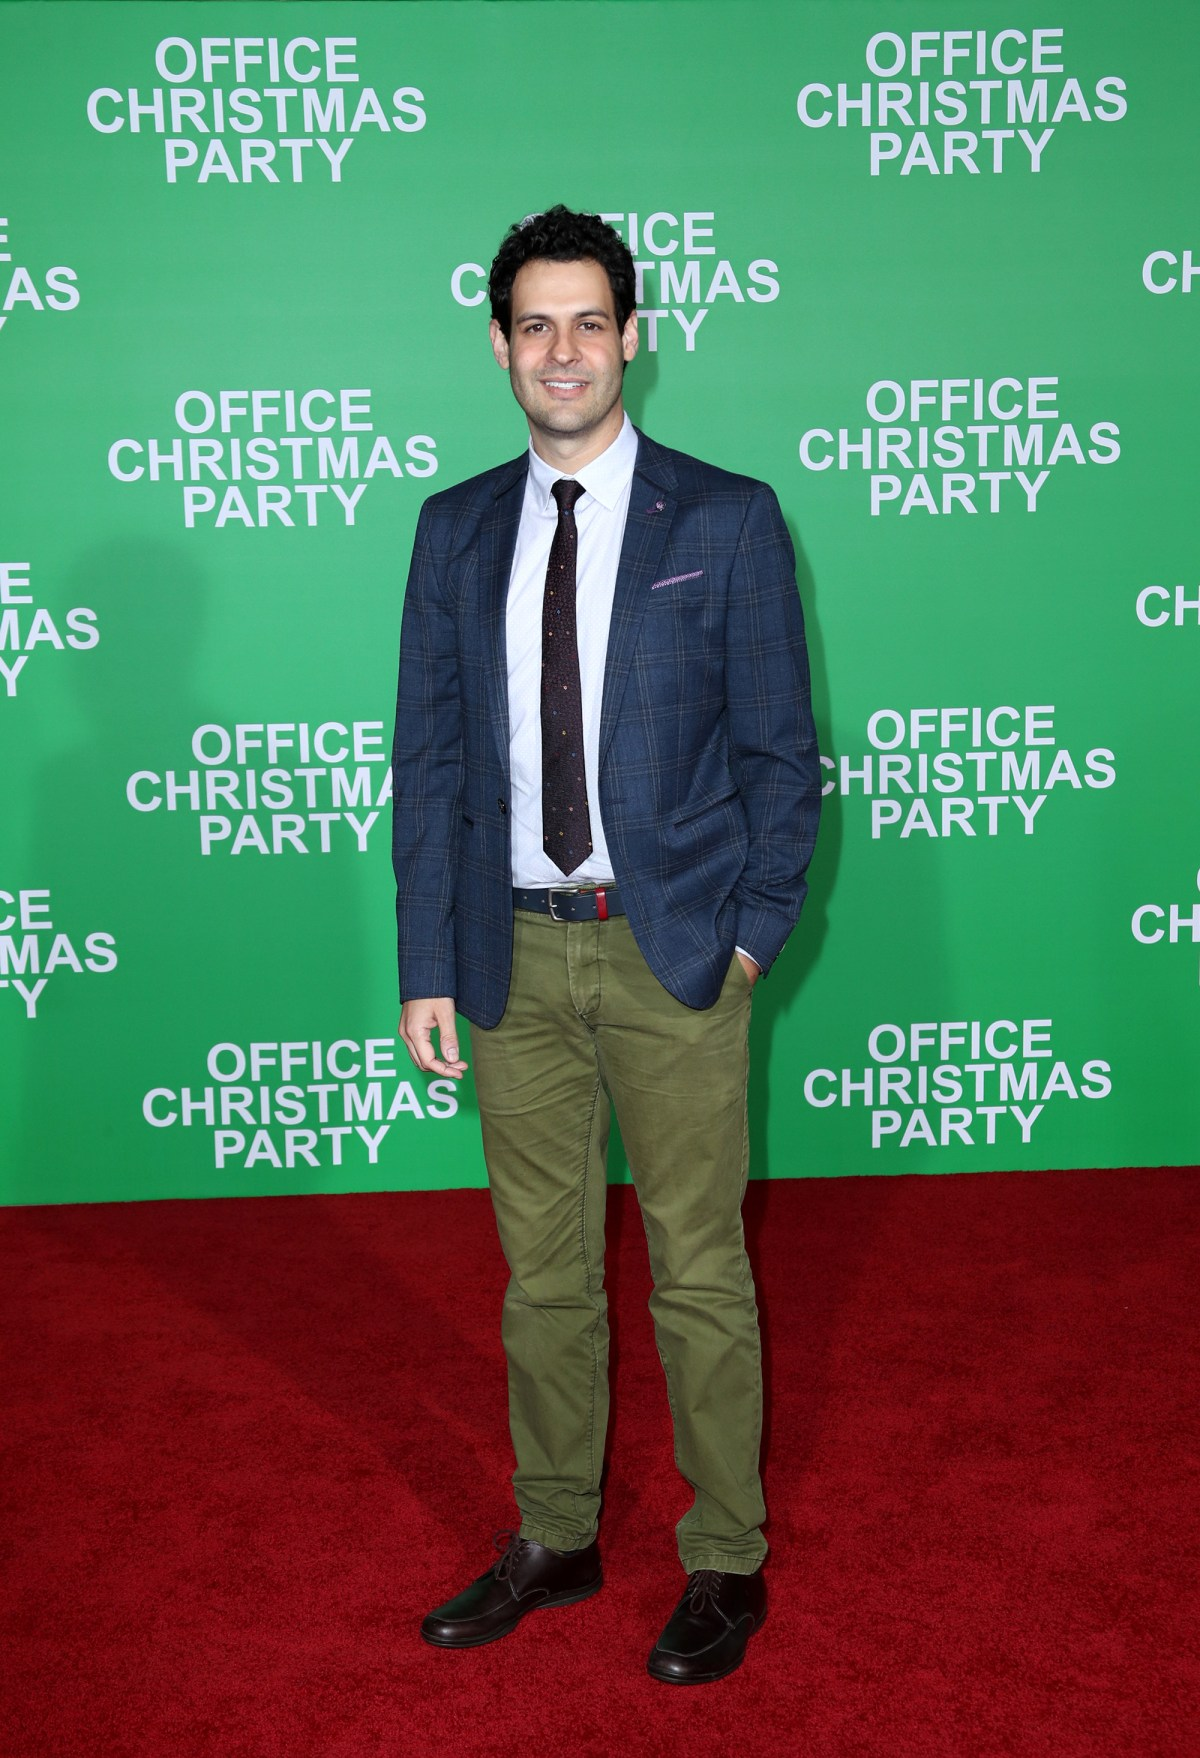 """WESTWOOD, CA - DECEMBER 07:  Actor Andrew Leeds attends the LA Premiere of Paramount Pictures """"Office Christmas Party"""" at Regency Village Theatre on December 7, 2016 in Westwood, California.  (Photo by Jonathan Leibson/Getty Images for Paramount Pictures) *** Local Caption *** Andrew Leeds"""